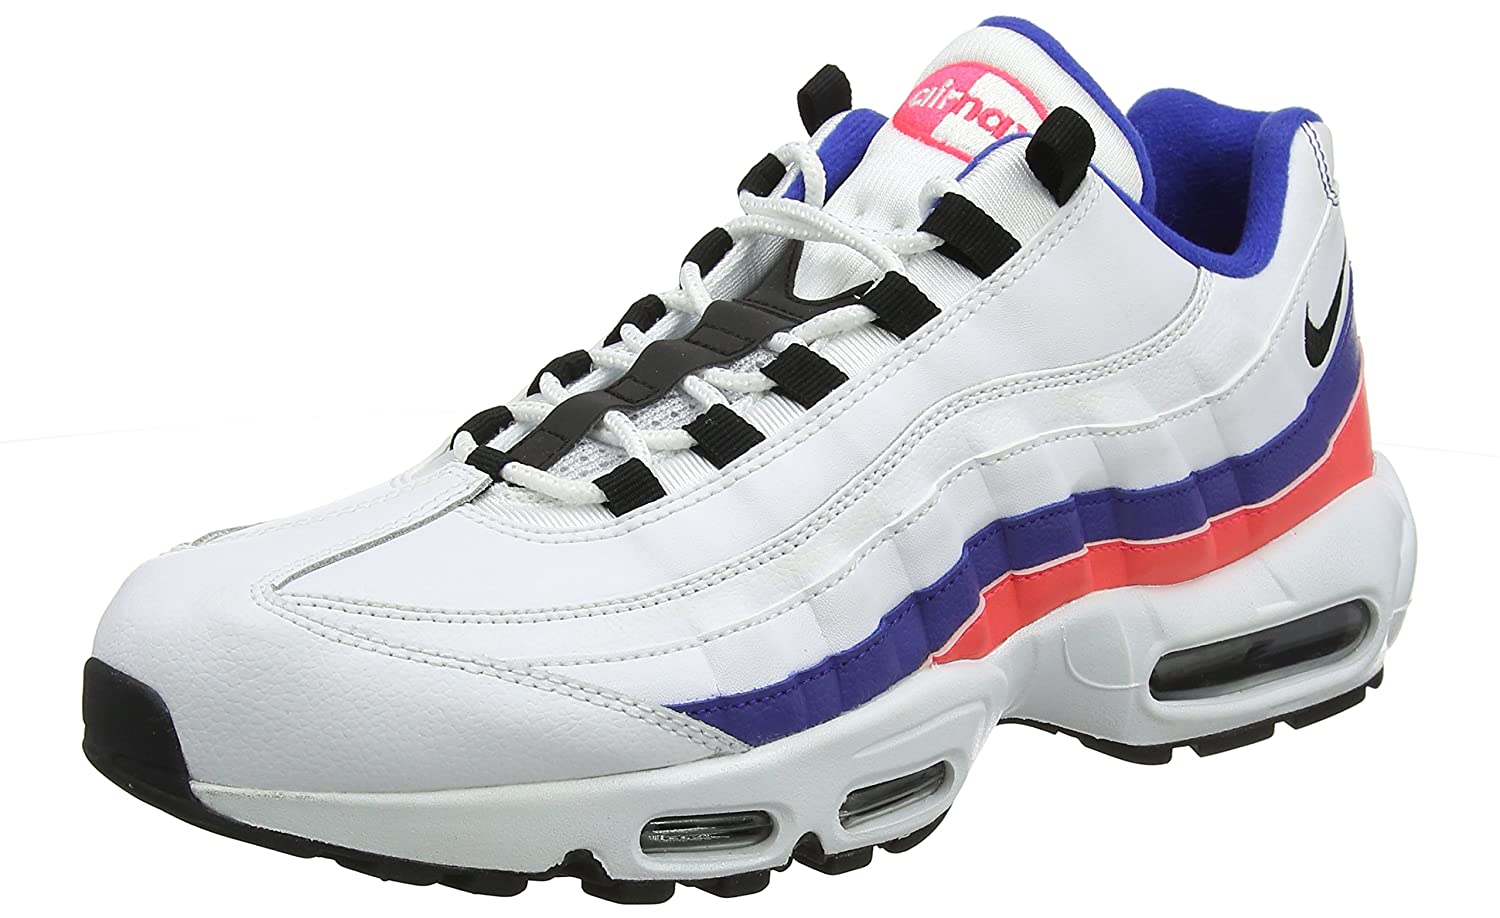 on sale 9afd8 43eb4 Amazon.com | NIKE Men's Air Max 95 White/Black/Solar Red ...